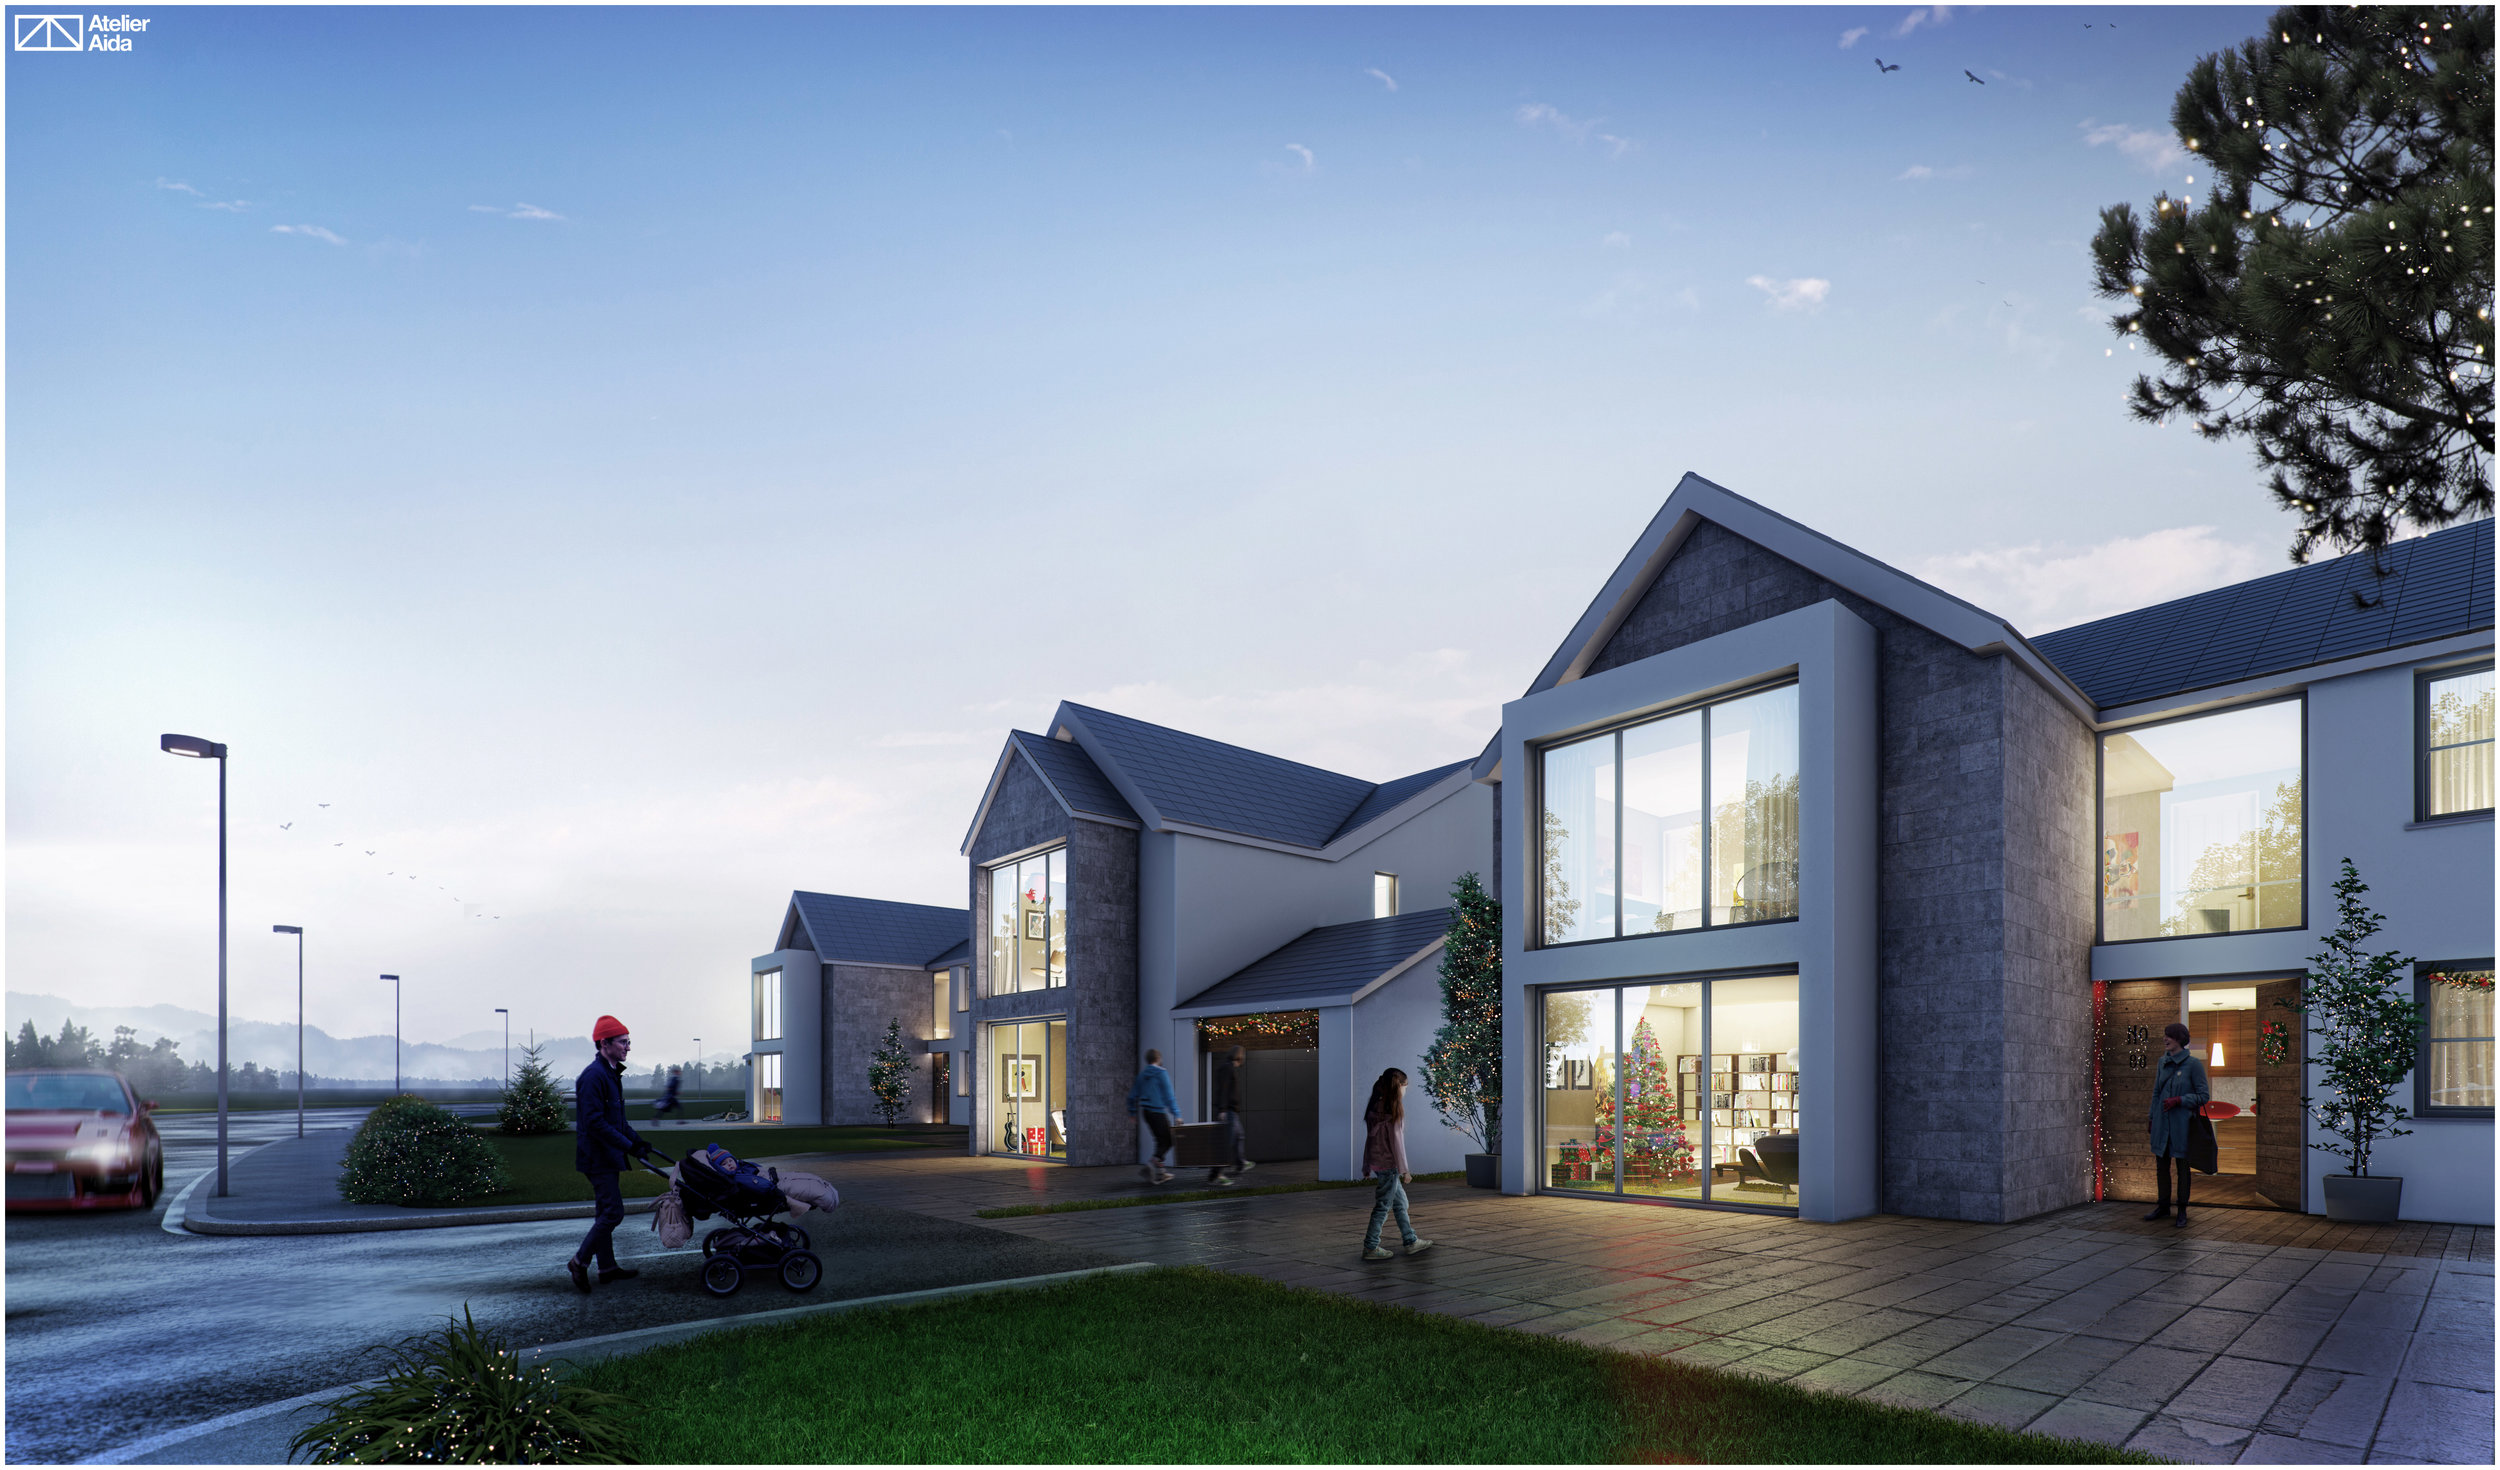 hight resolution of 3 new houses old way bishopstone swansea